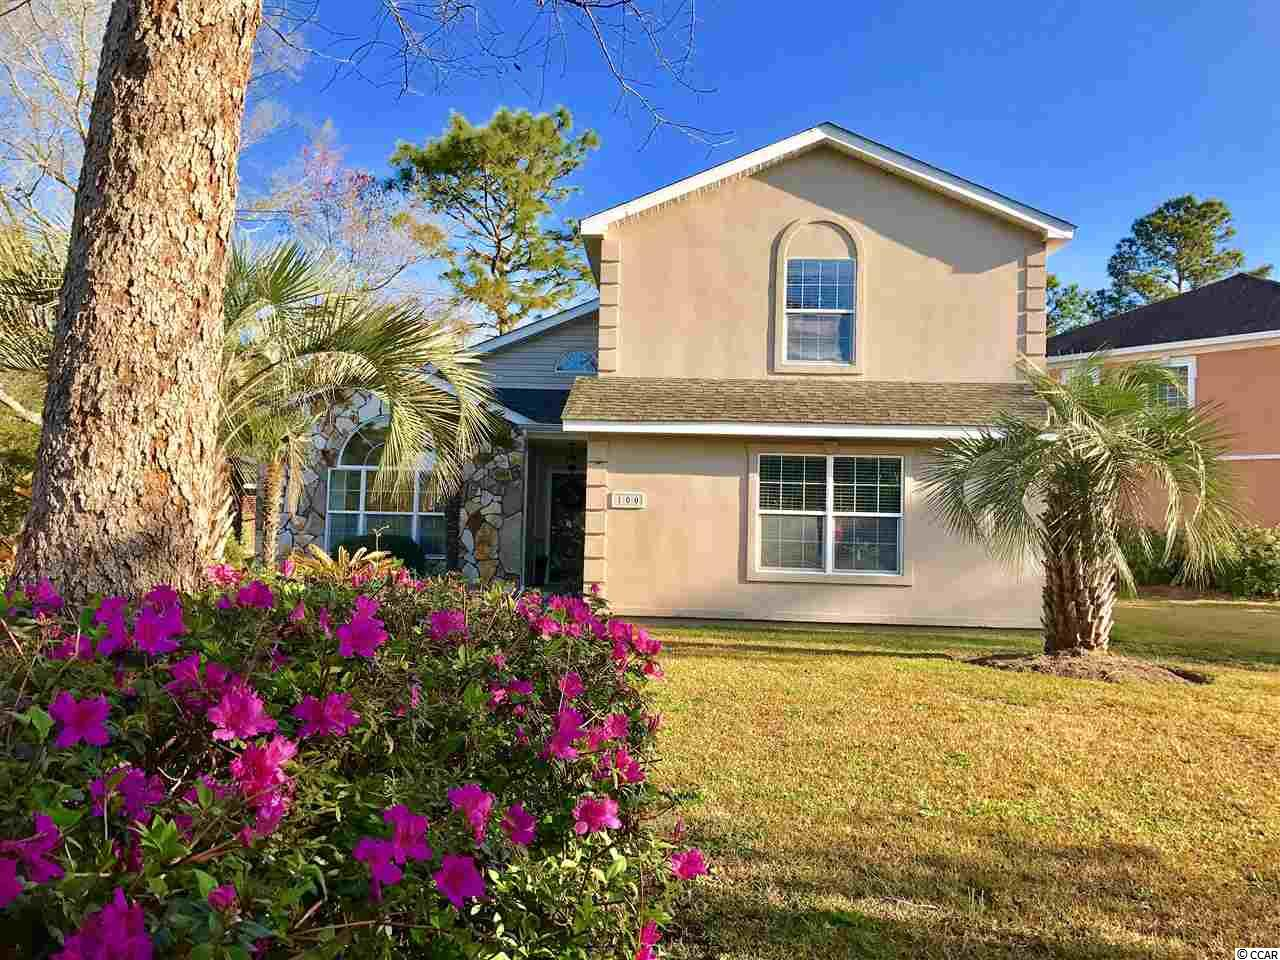 Single Family Home for Sale at 100 Cooper River Road 100 Cooper River Road Myrtle Beach, South Carolina 29588 United States